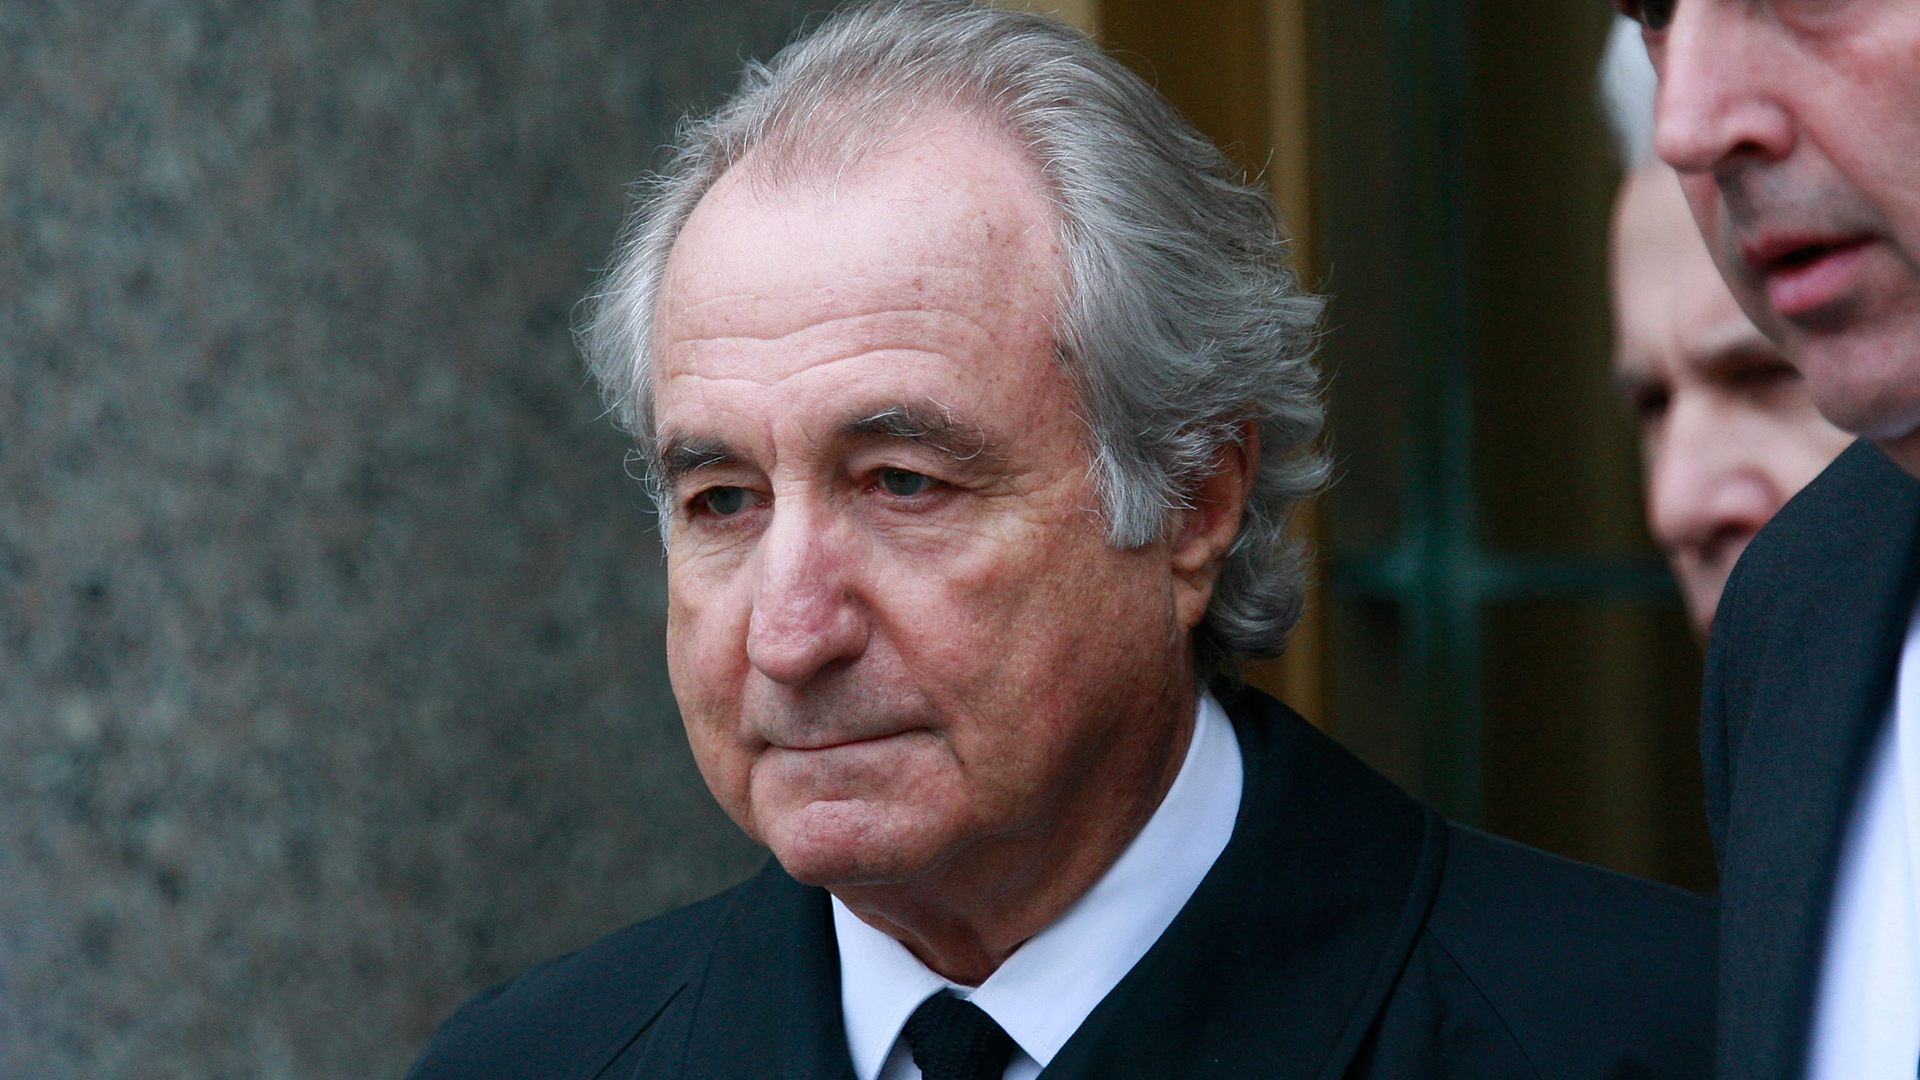 Bernard Madoff exits federal court March 10, 2009 in New York City. (Credit: Mario Tama/Getty Images)